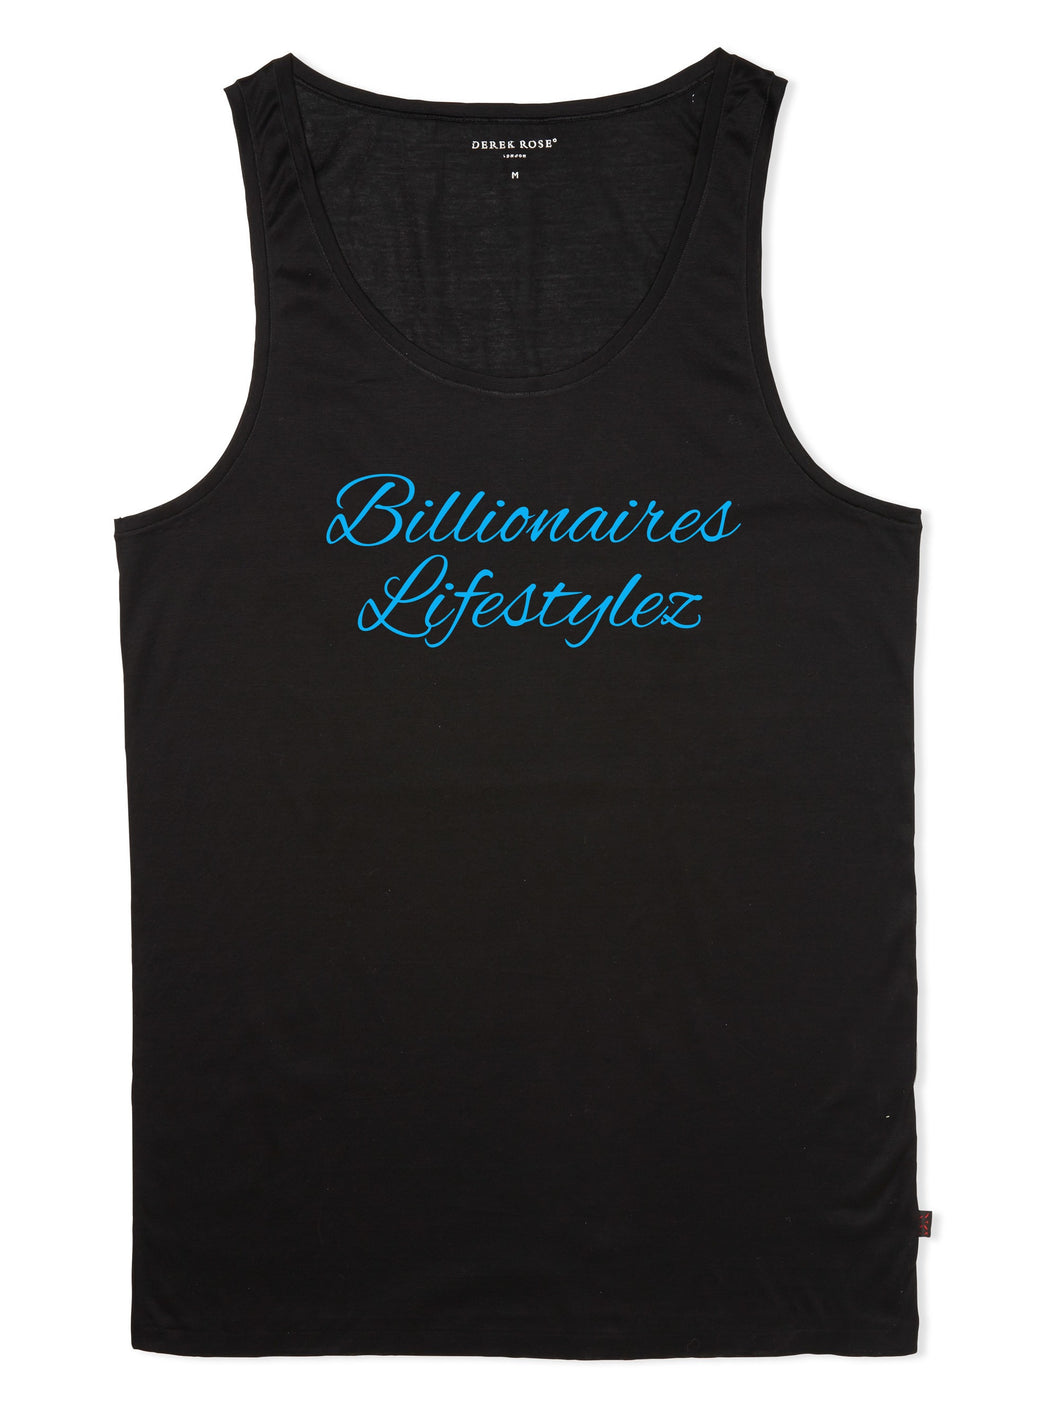 Billionaires lifestylez black and blue Tank top